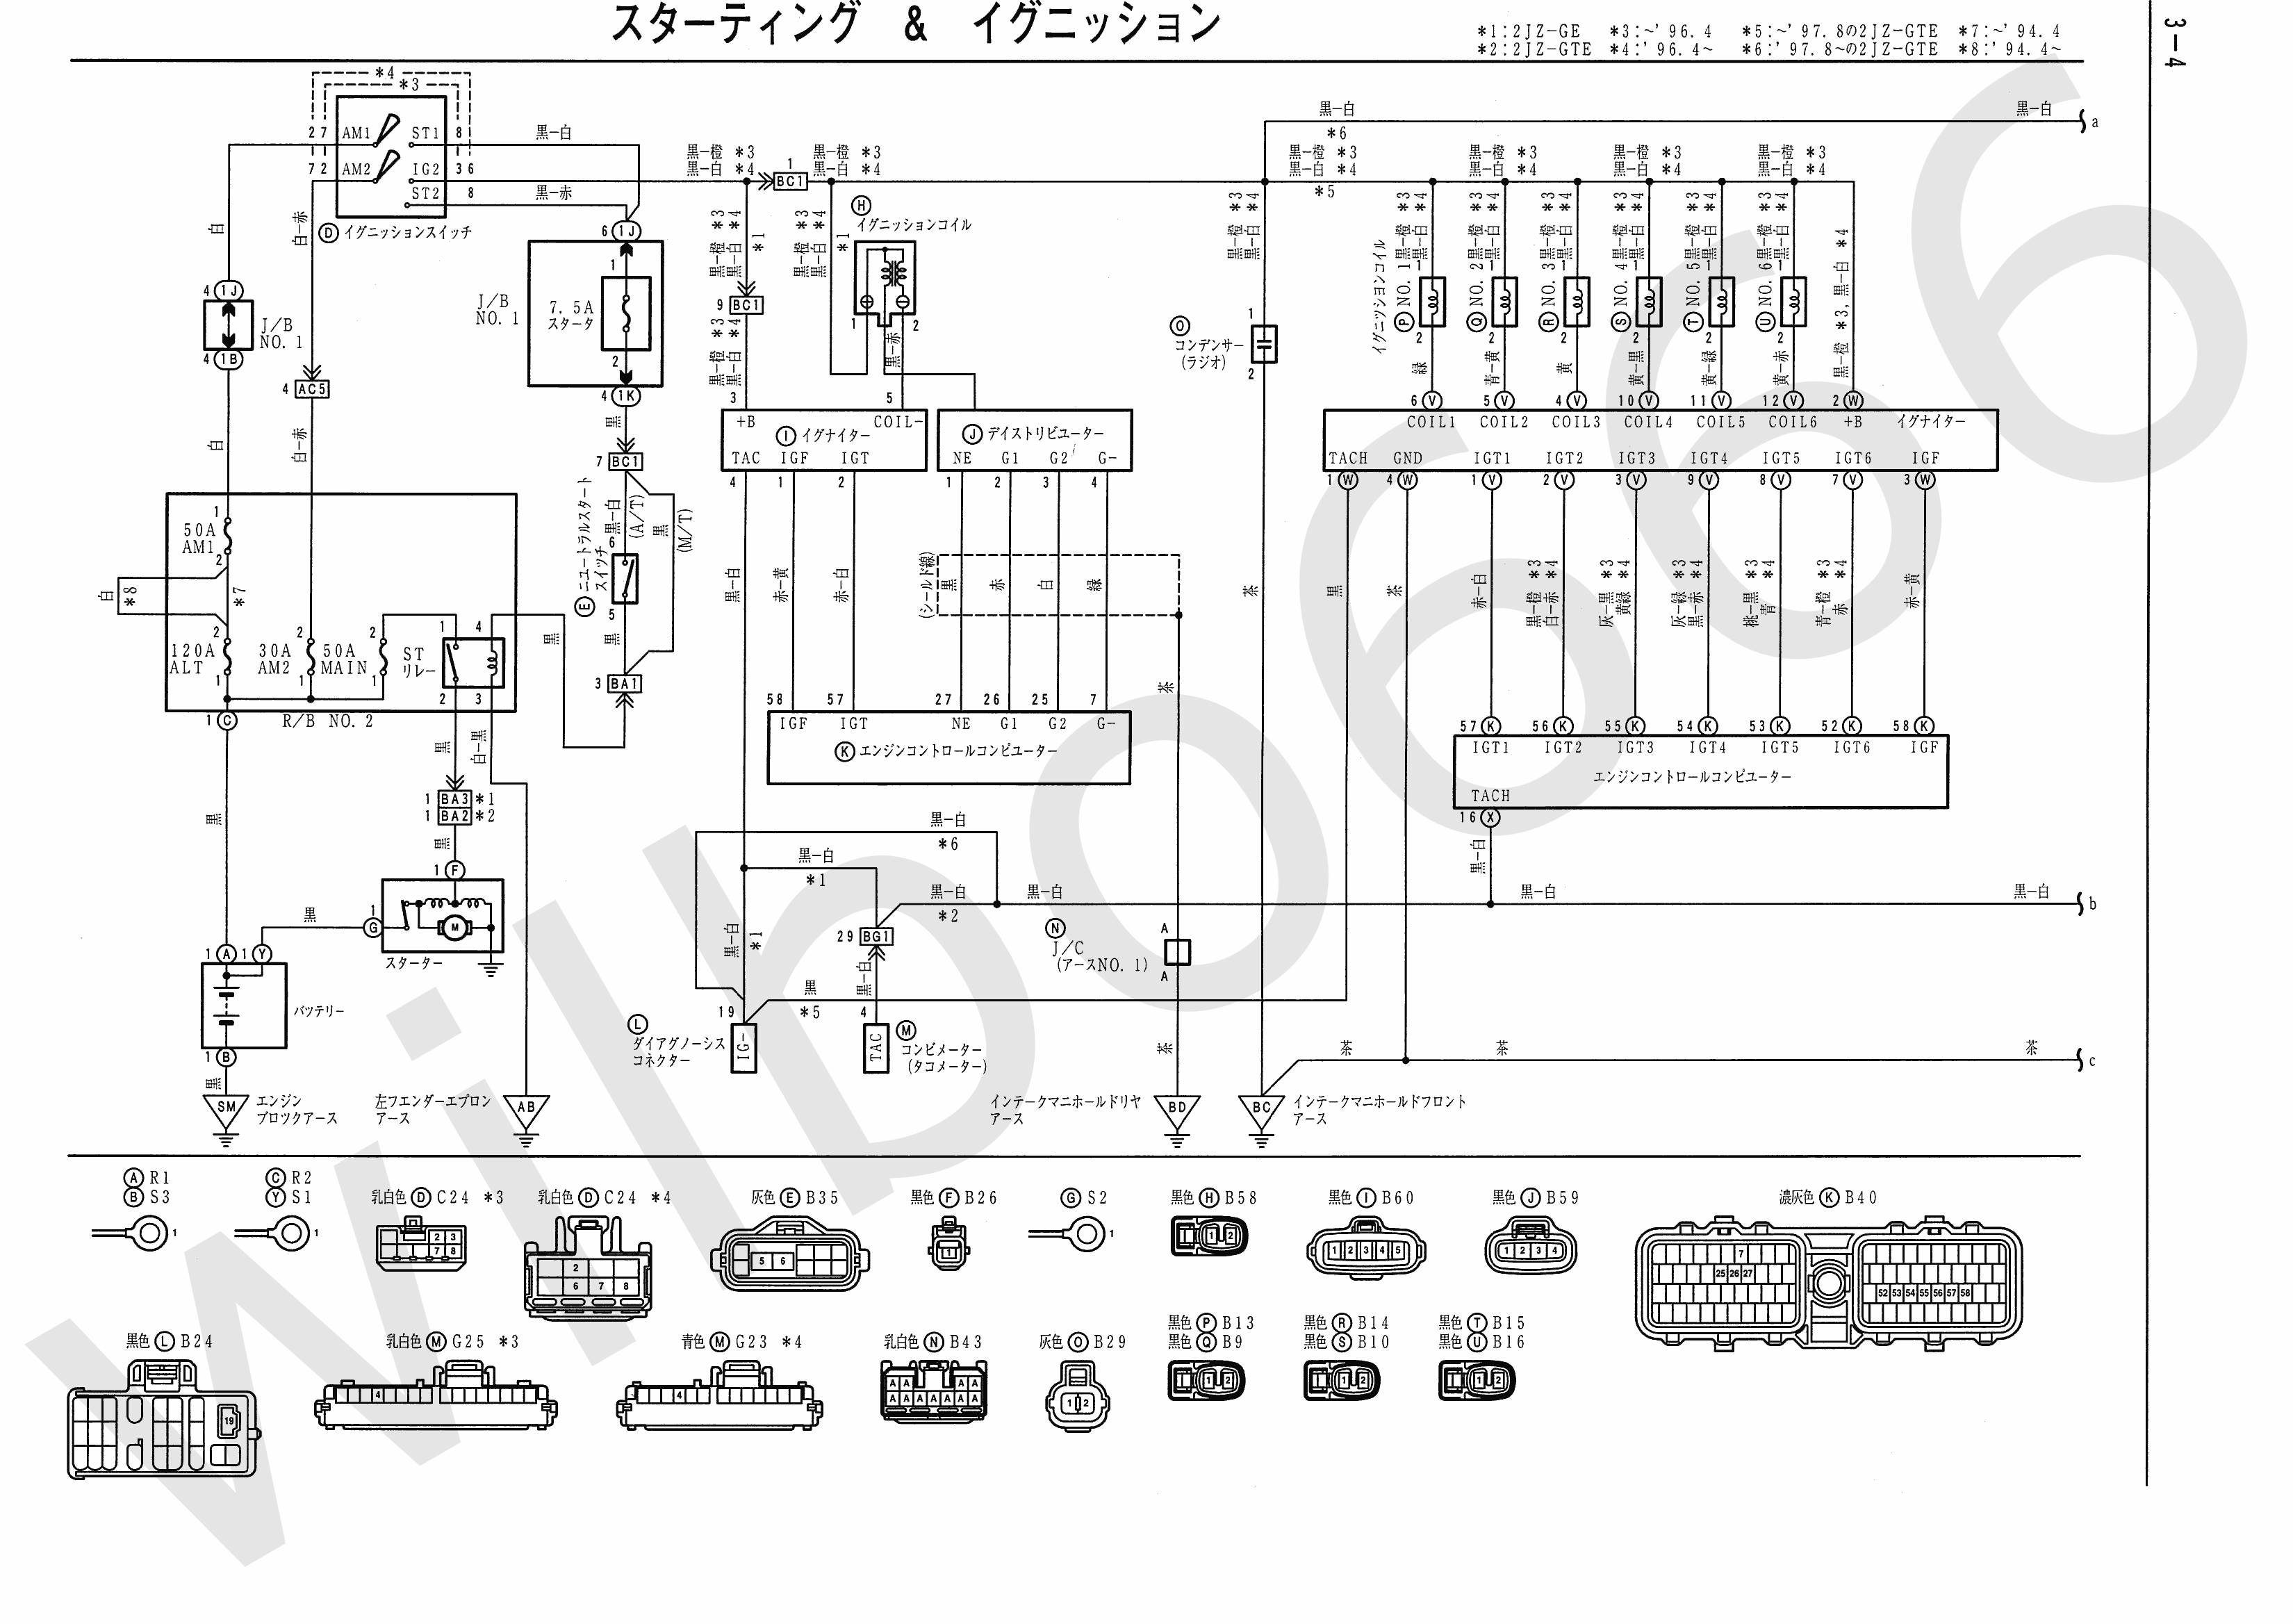 JZA80 Electrical Wiring Diagram 6742505 3 4?resize\\\\\\\\\\\\\\\\\\\\\\\\\\\=665%2C471 satchwell room thermostats thermostat pinout on satchwell satchwell thermostat wiring diagram at honlapkeszites.co